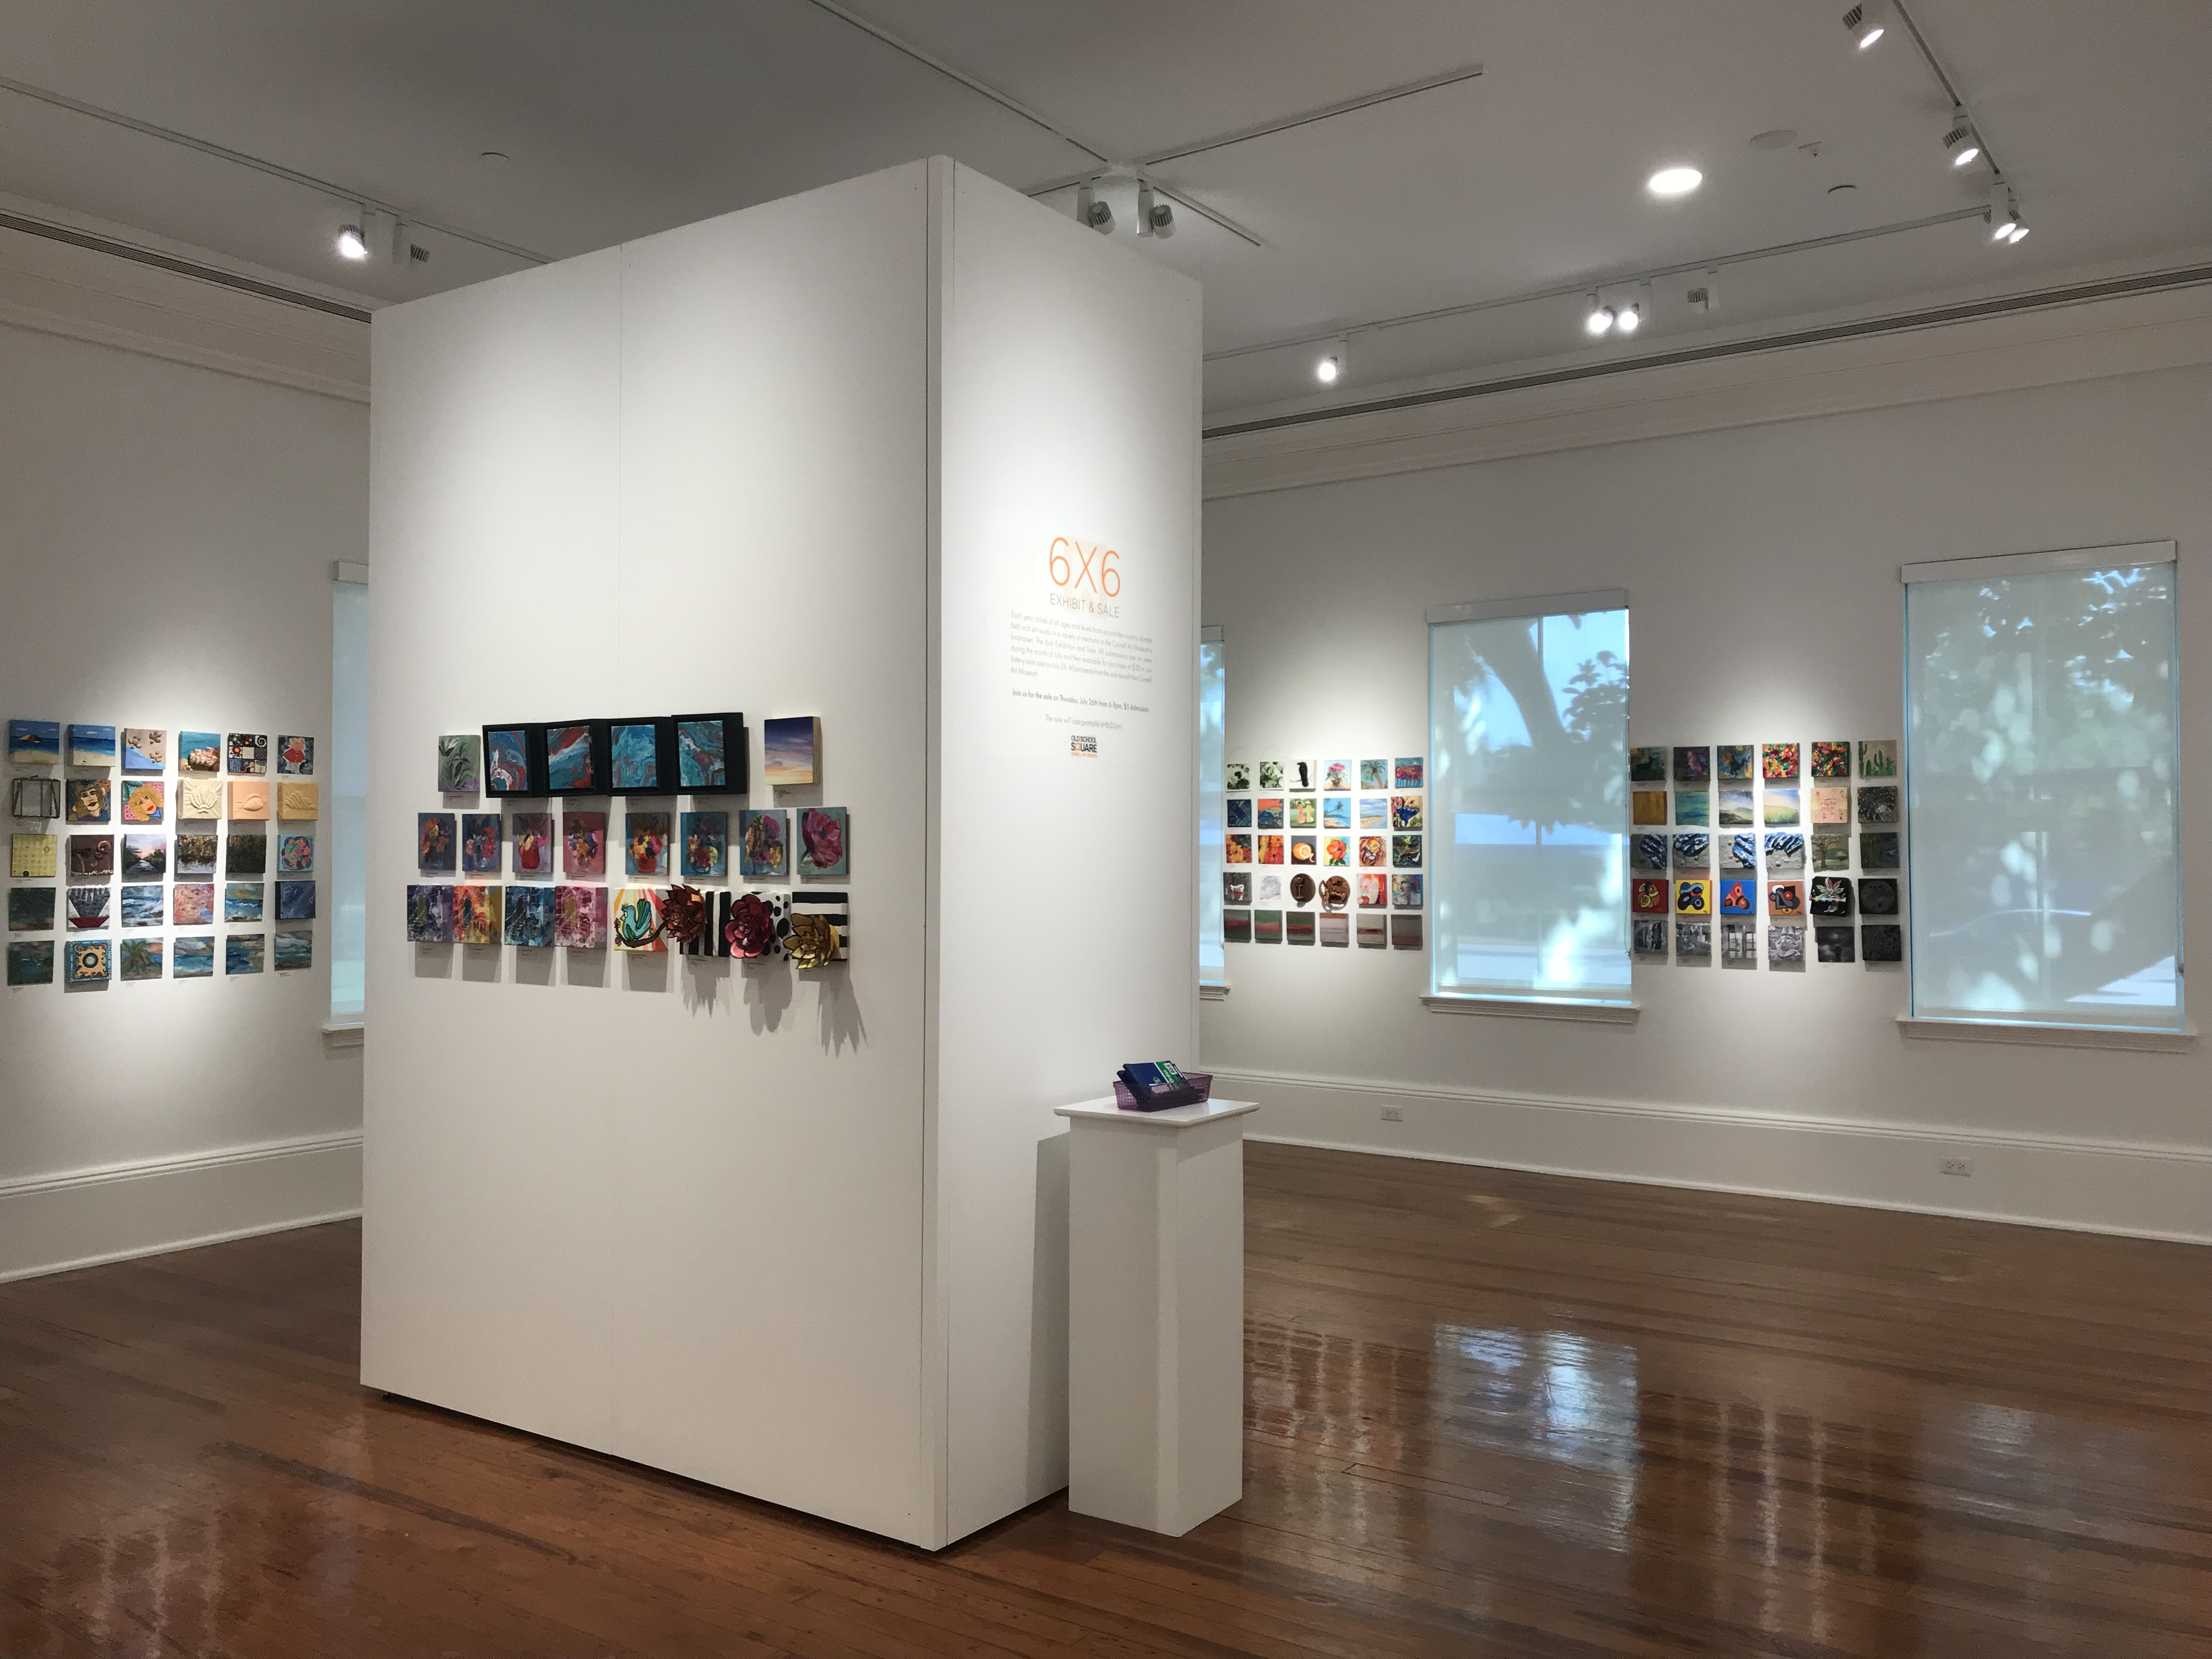 Corner Exhibition Stands Quest : Exhibitions booth western art museum